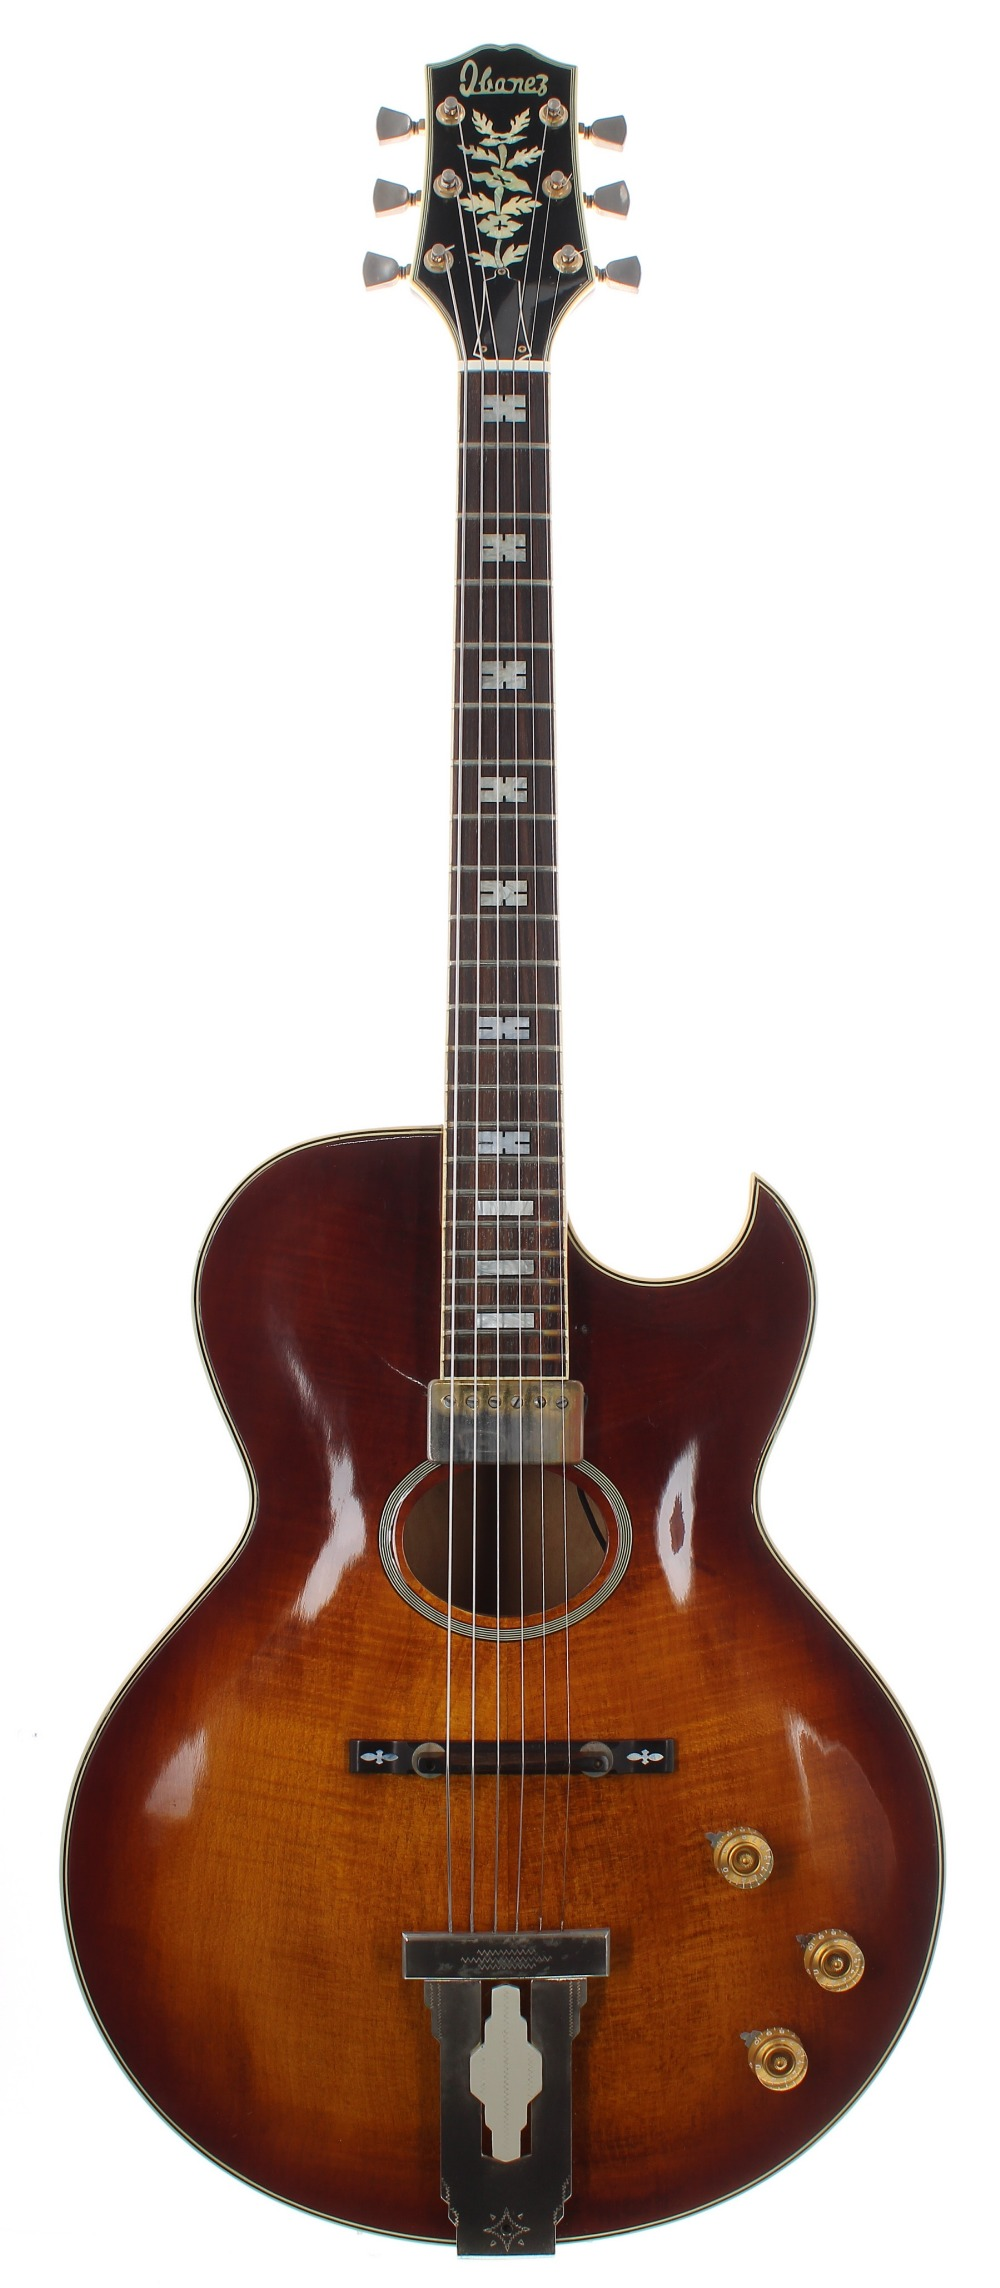 1977 Ibanez Howard Roberts 2453 hollow body electric guitar, made in Japan, ser. no. B7xxxx6;